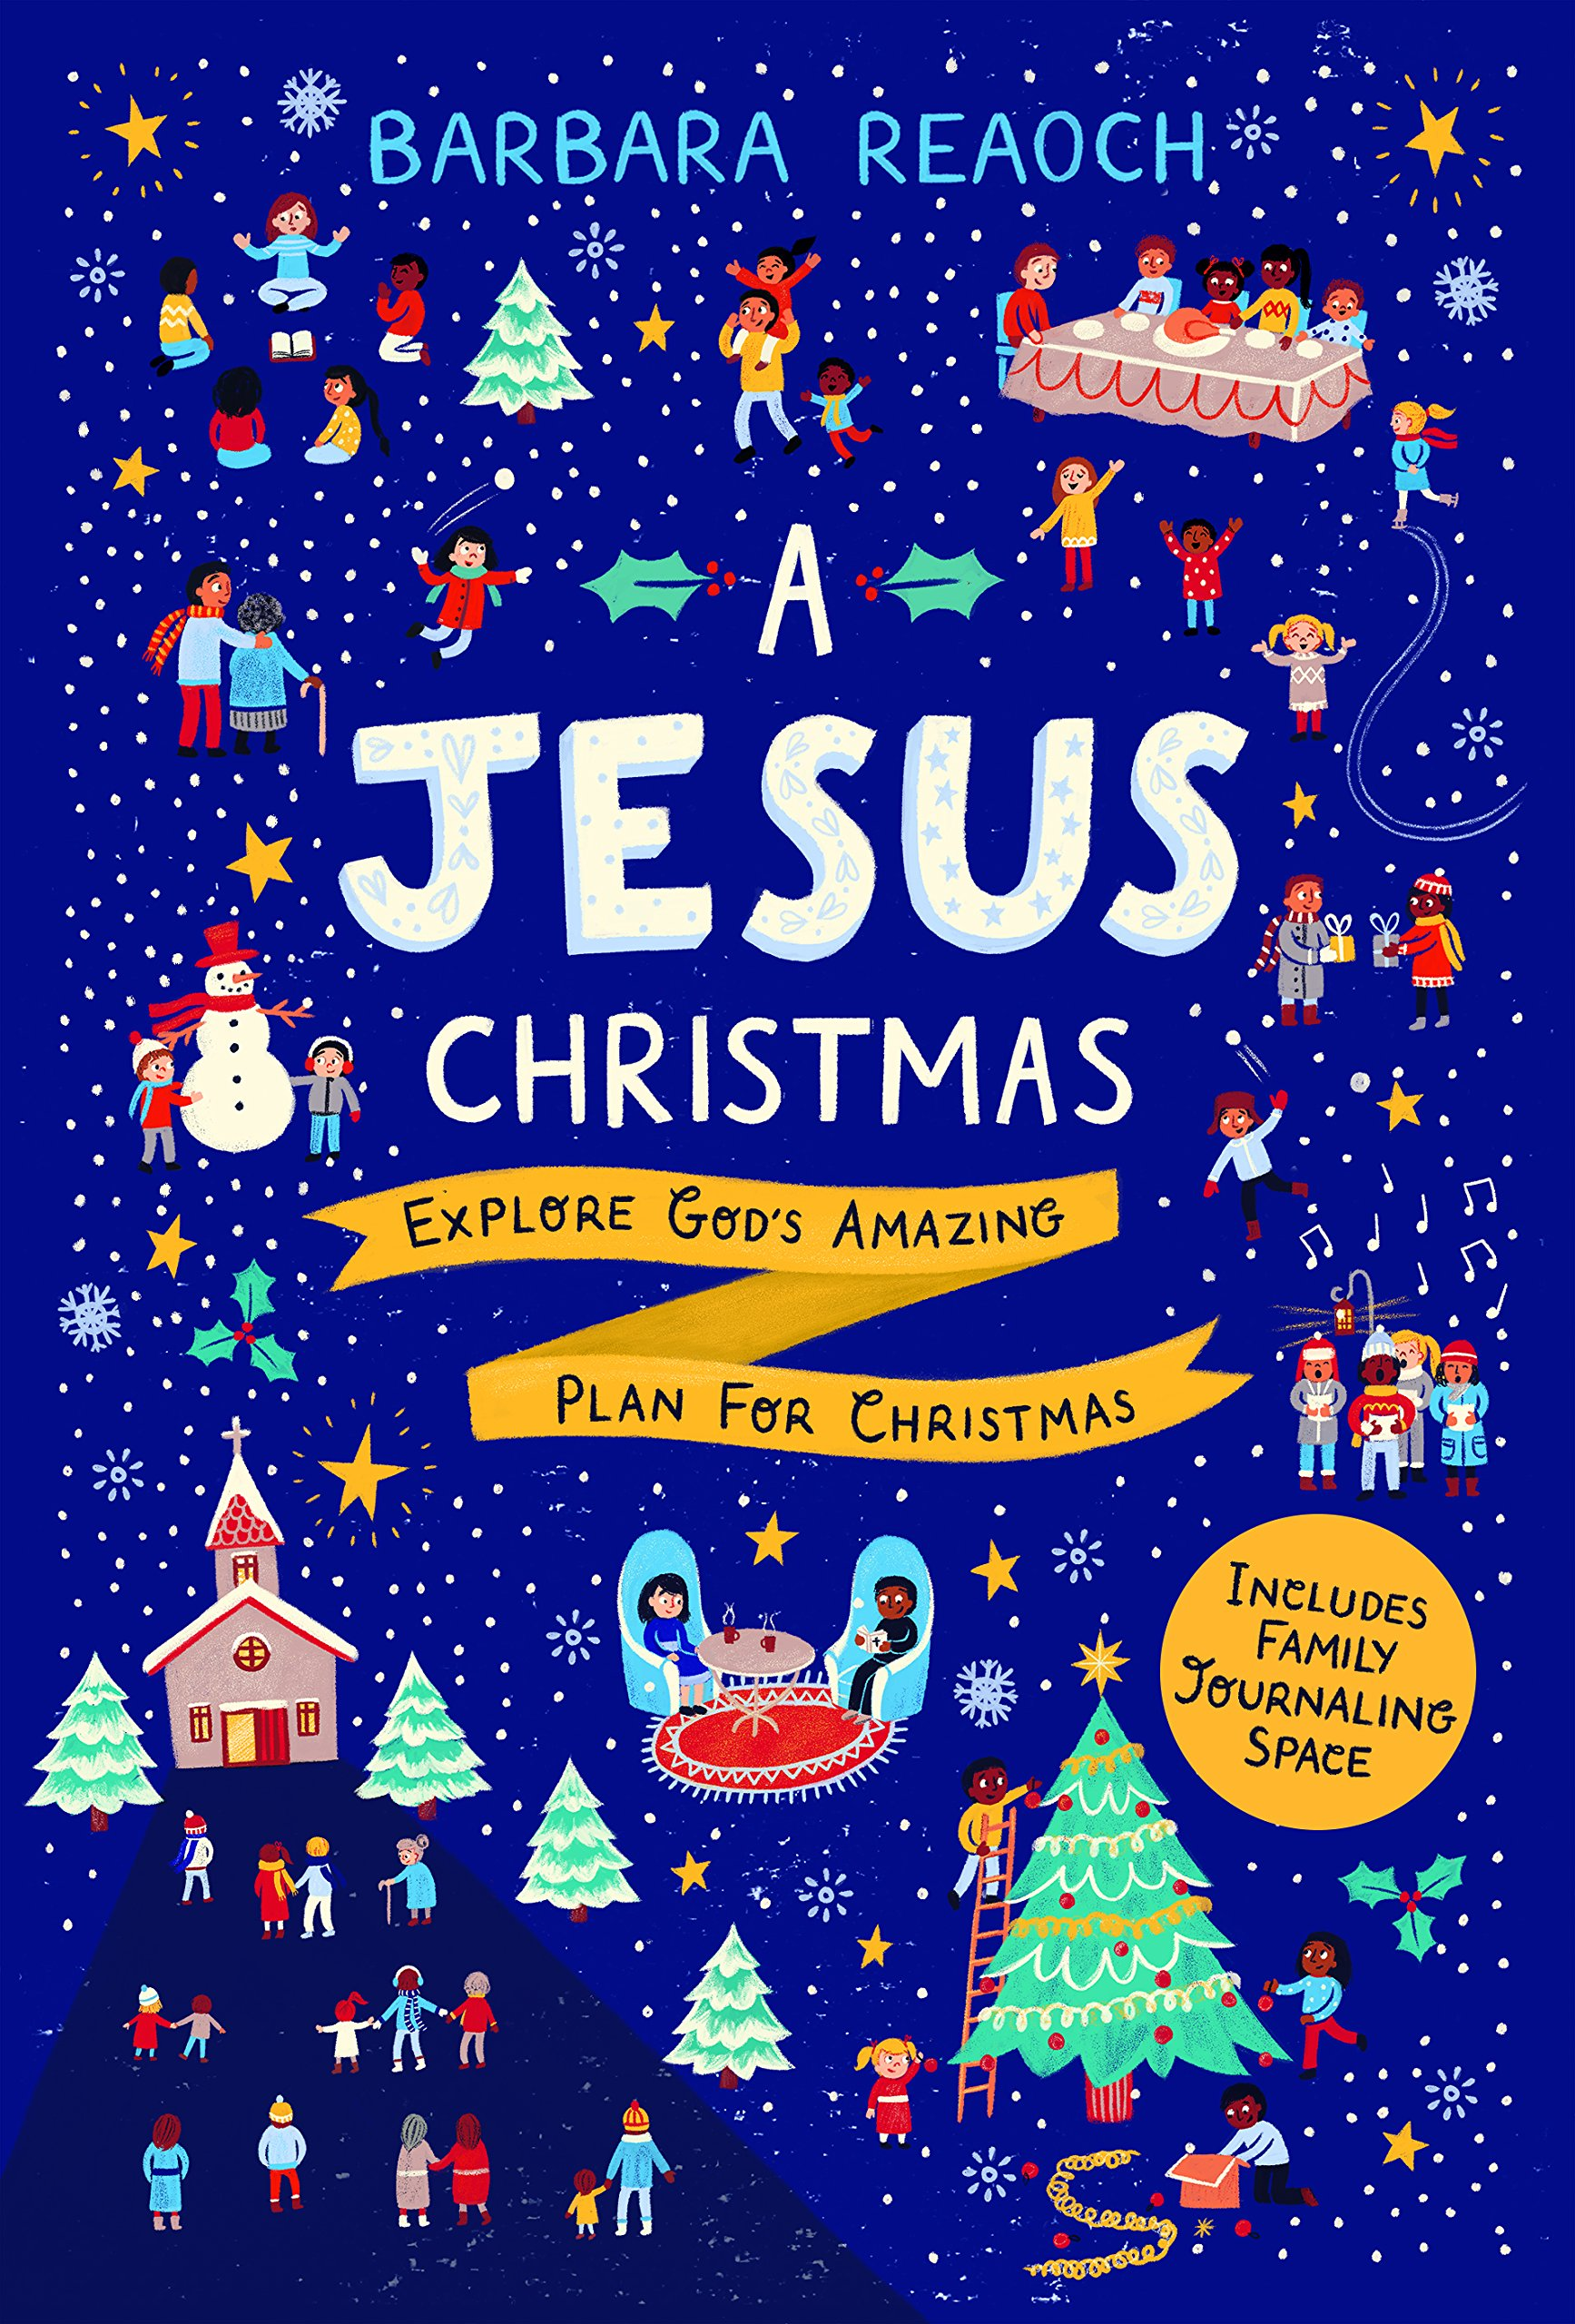 A Jesus Christmas Explore God S Amazing Plan For Christmas Barbara Reaoch 9781784982270 Amazon Com Books